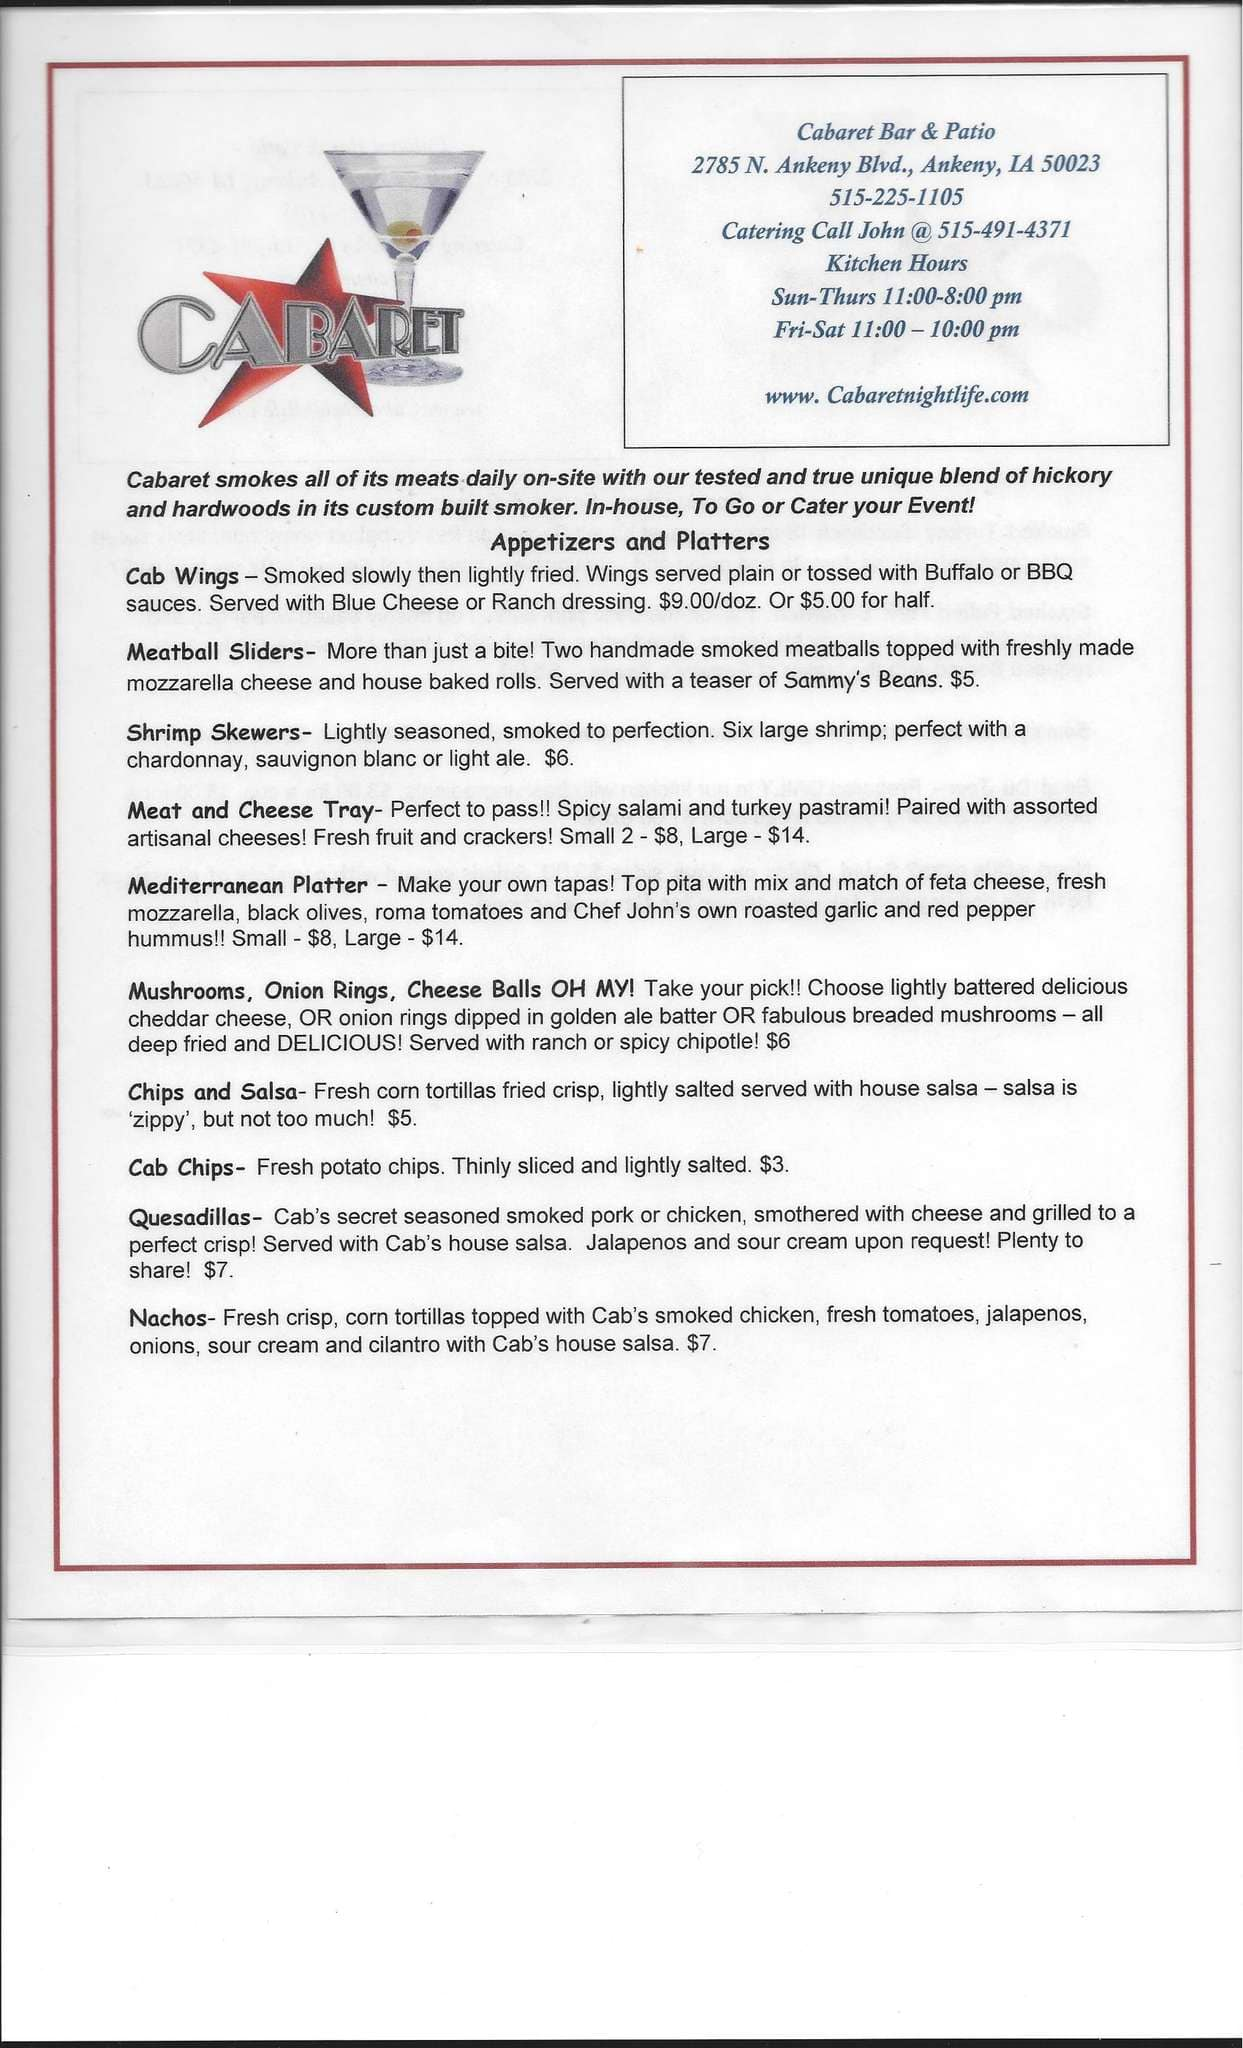 Cabaret Bar & Patio Menu Menu for Cabaret Bar & Patio Ankeny